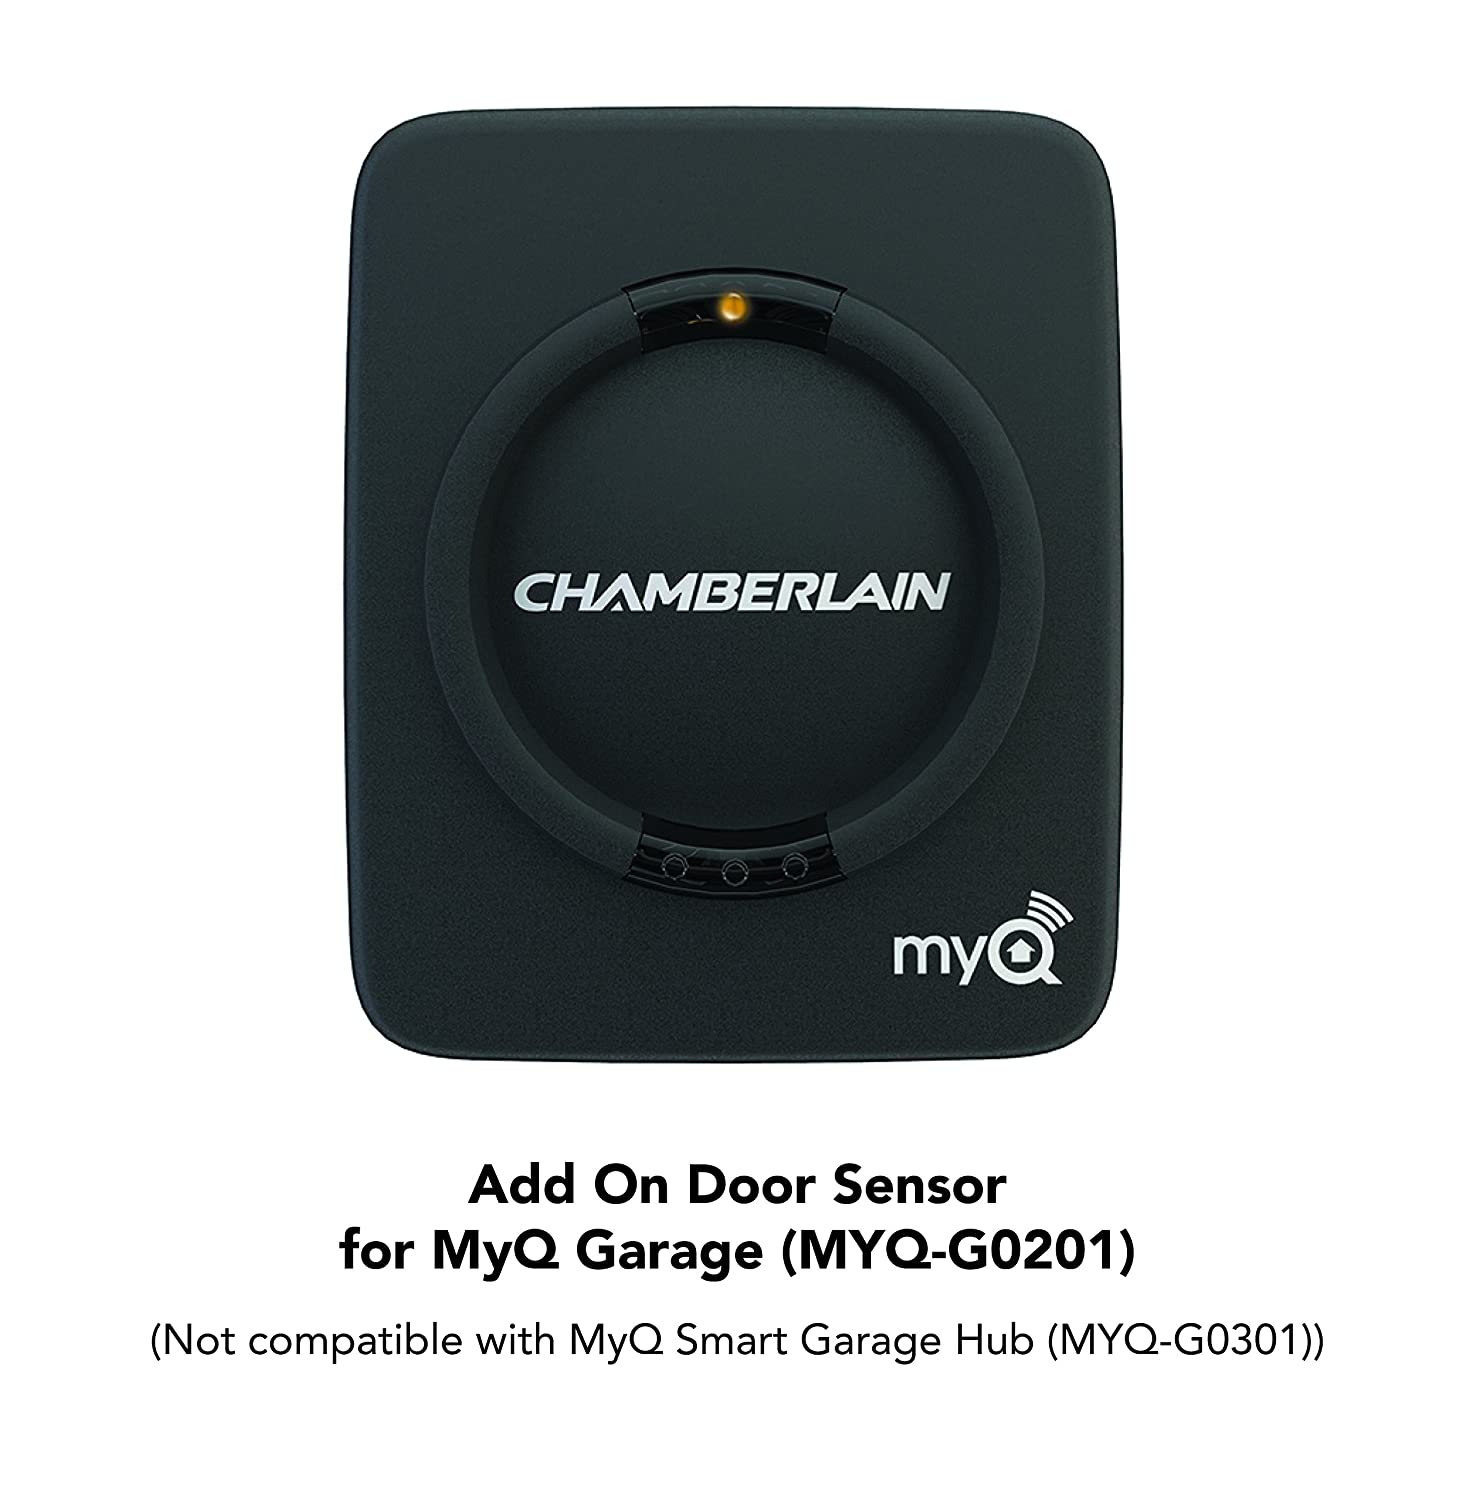 opener home accessories myq smart chamberlain garage the hub door depot p